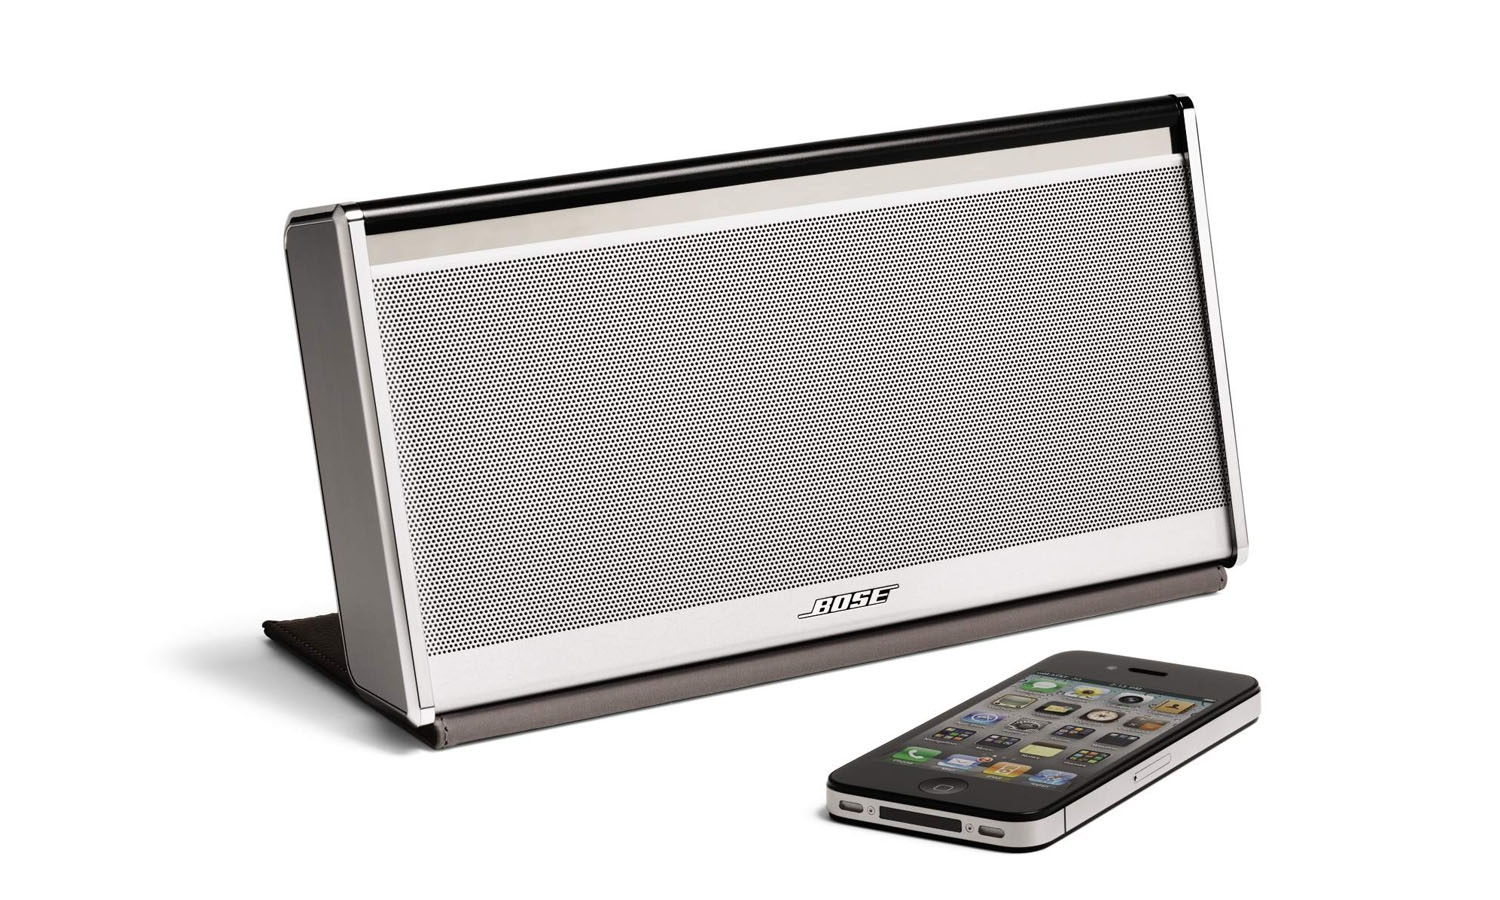 Bose SoundLink Wireless Mobile Speaker Premium LX